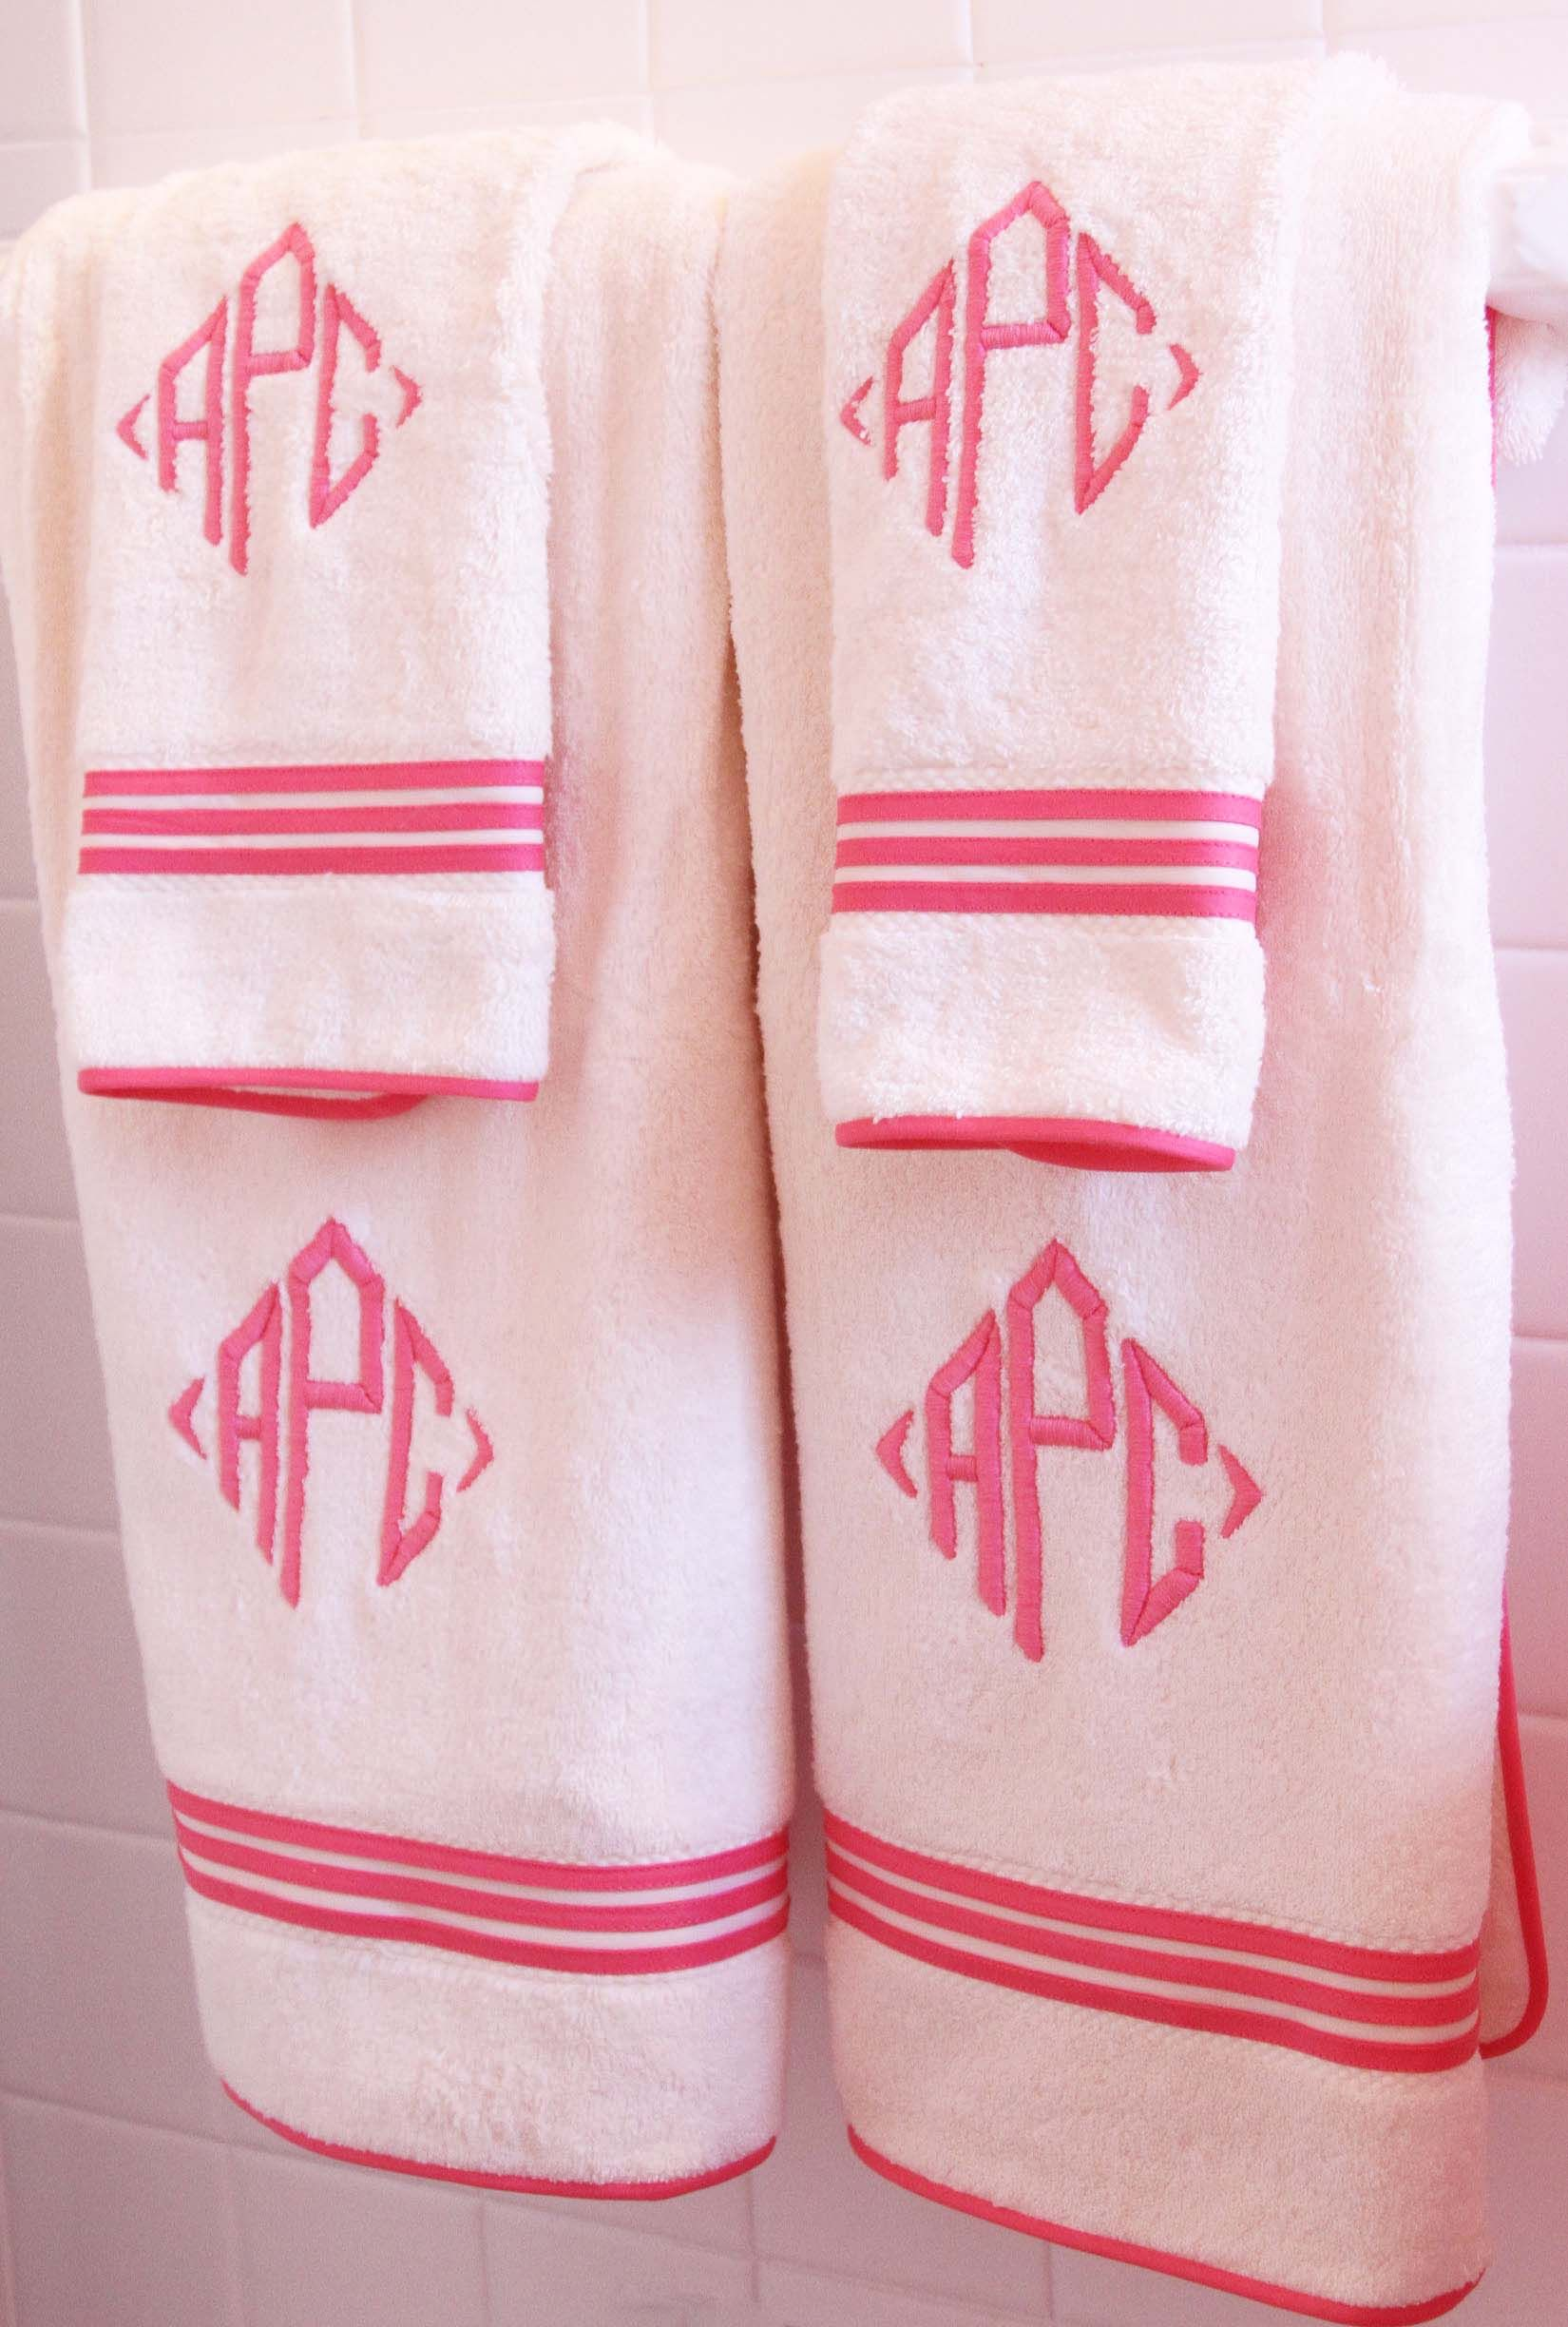 Diamond Monogrammed Newport Bath Towels In Pink College - Personalized bath towels for small bathroom ideas